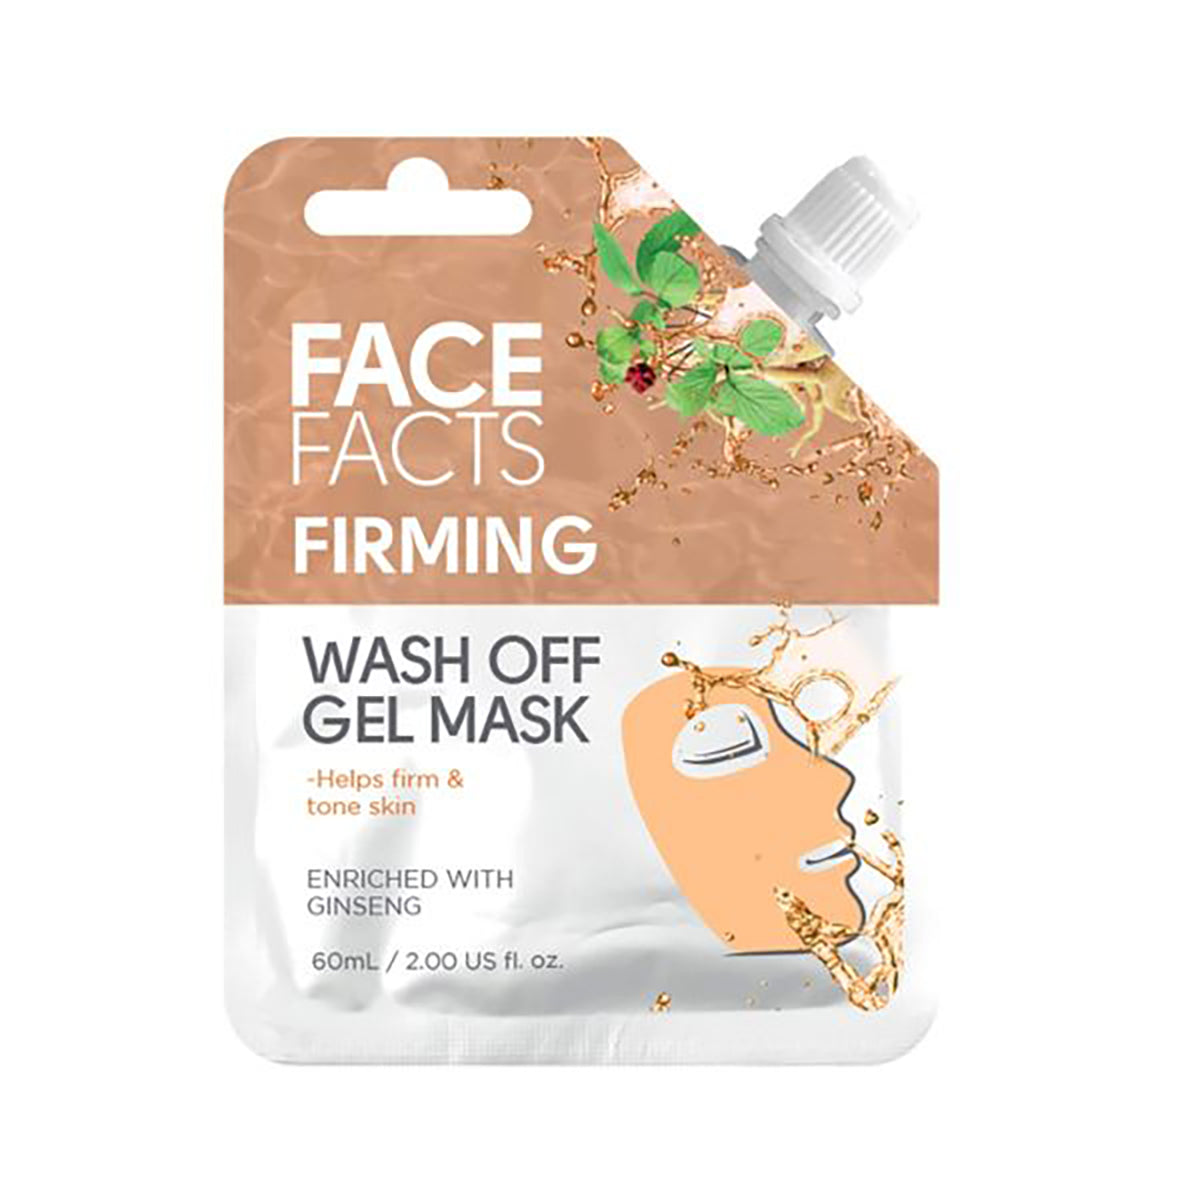 Face Facts Firming Wash off Mask